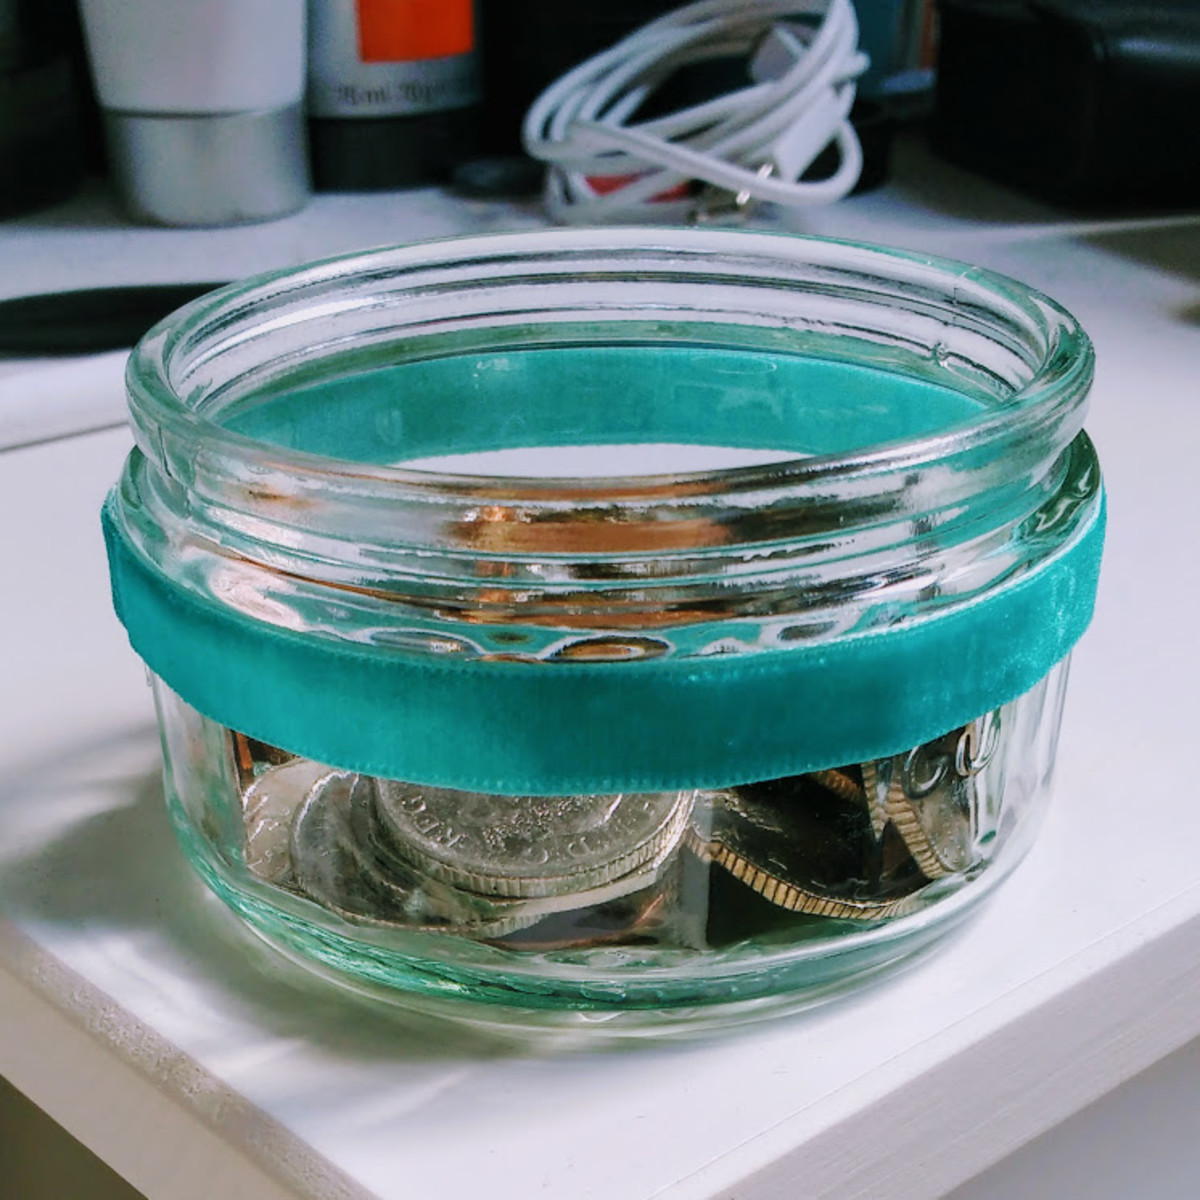 I decorated my spare change ramekin by gluing a piece of ribbon around it.